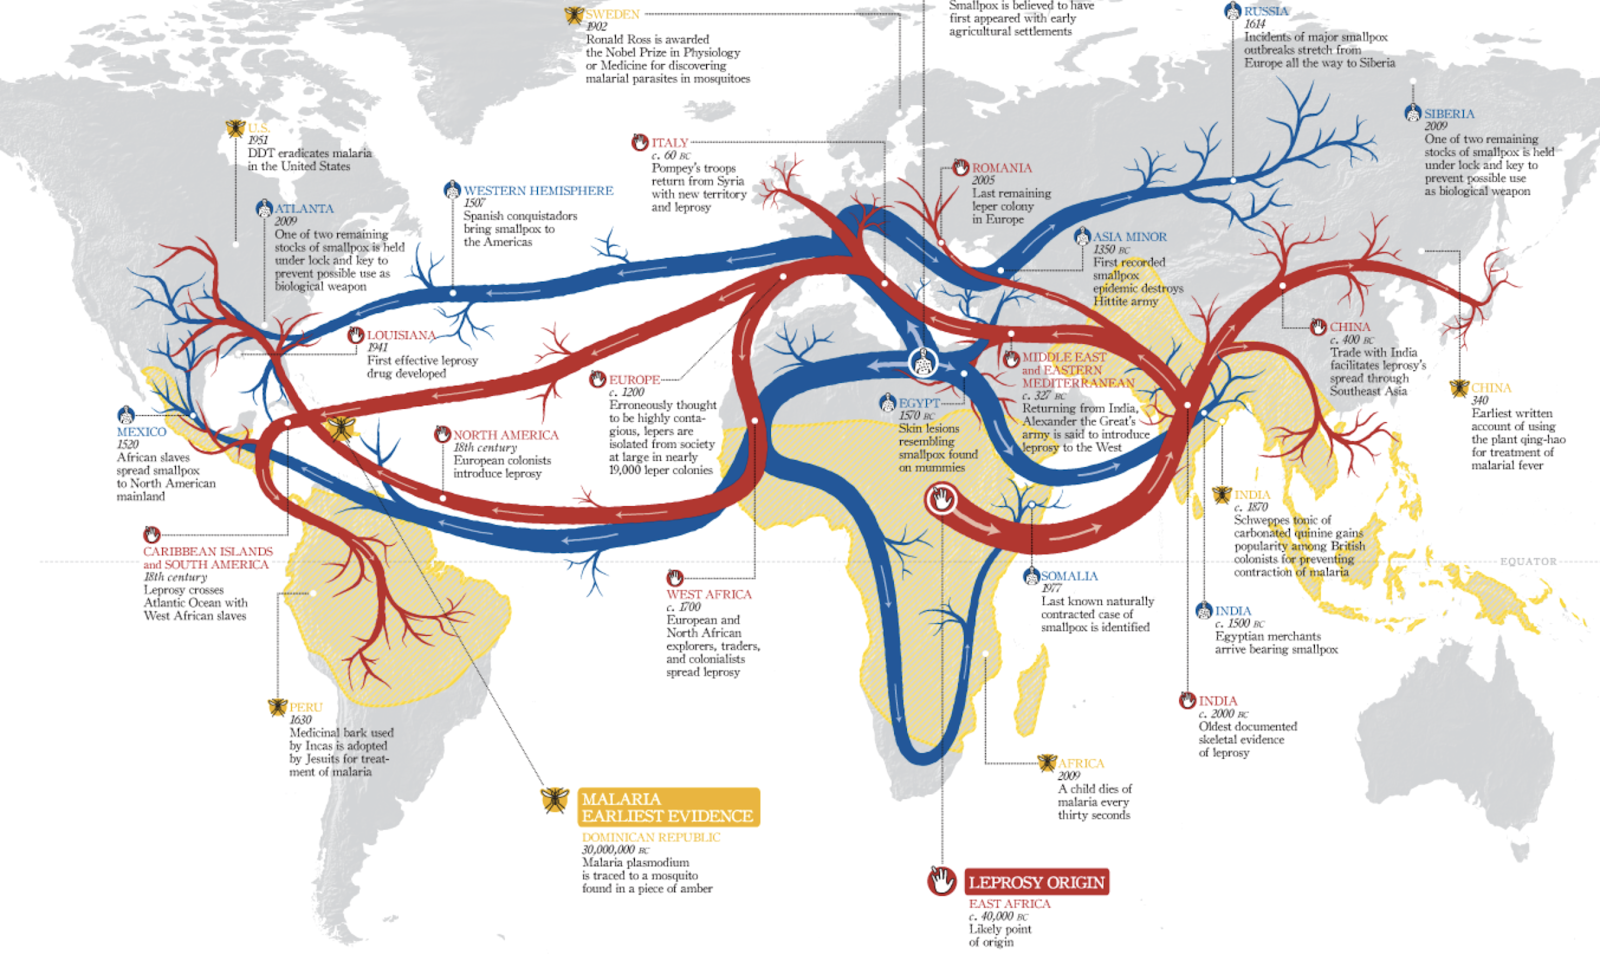 Spread of Disease flow map